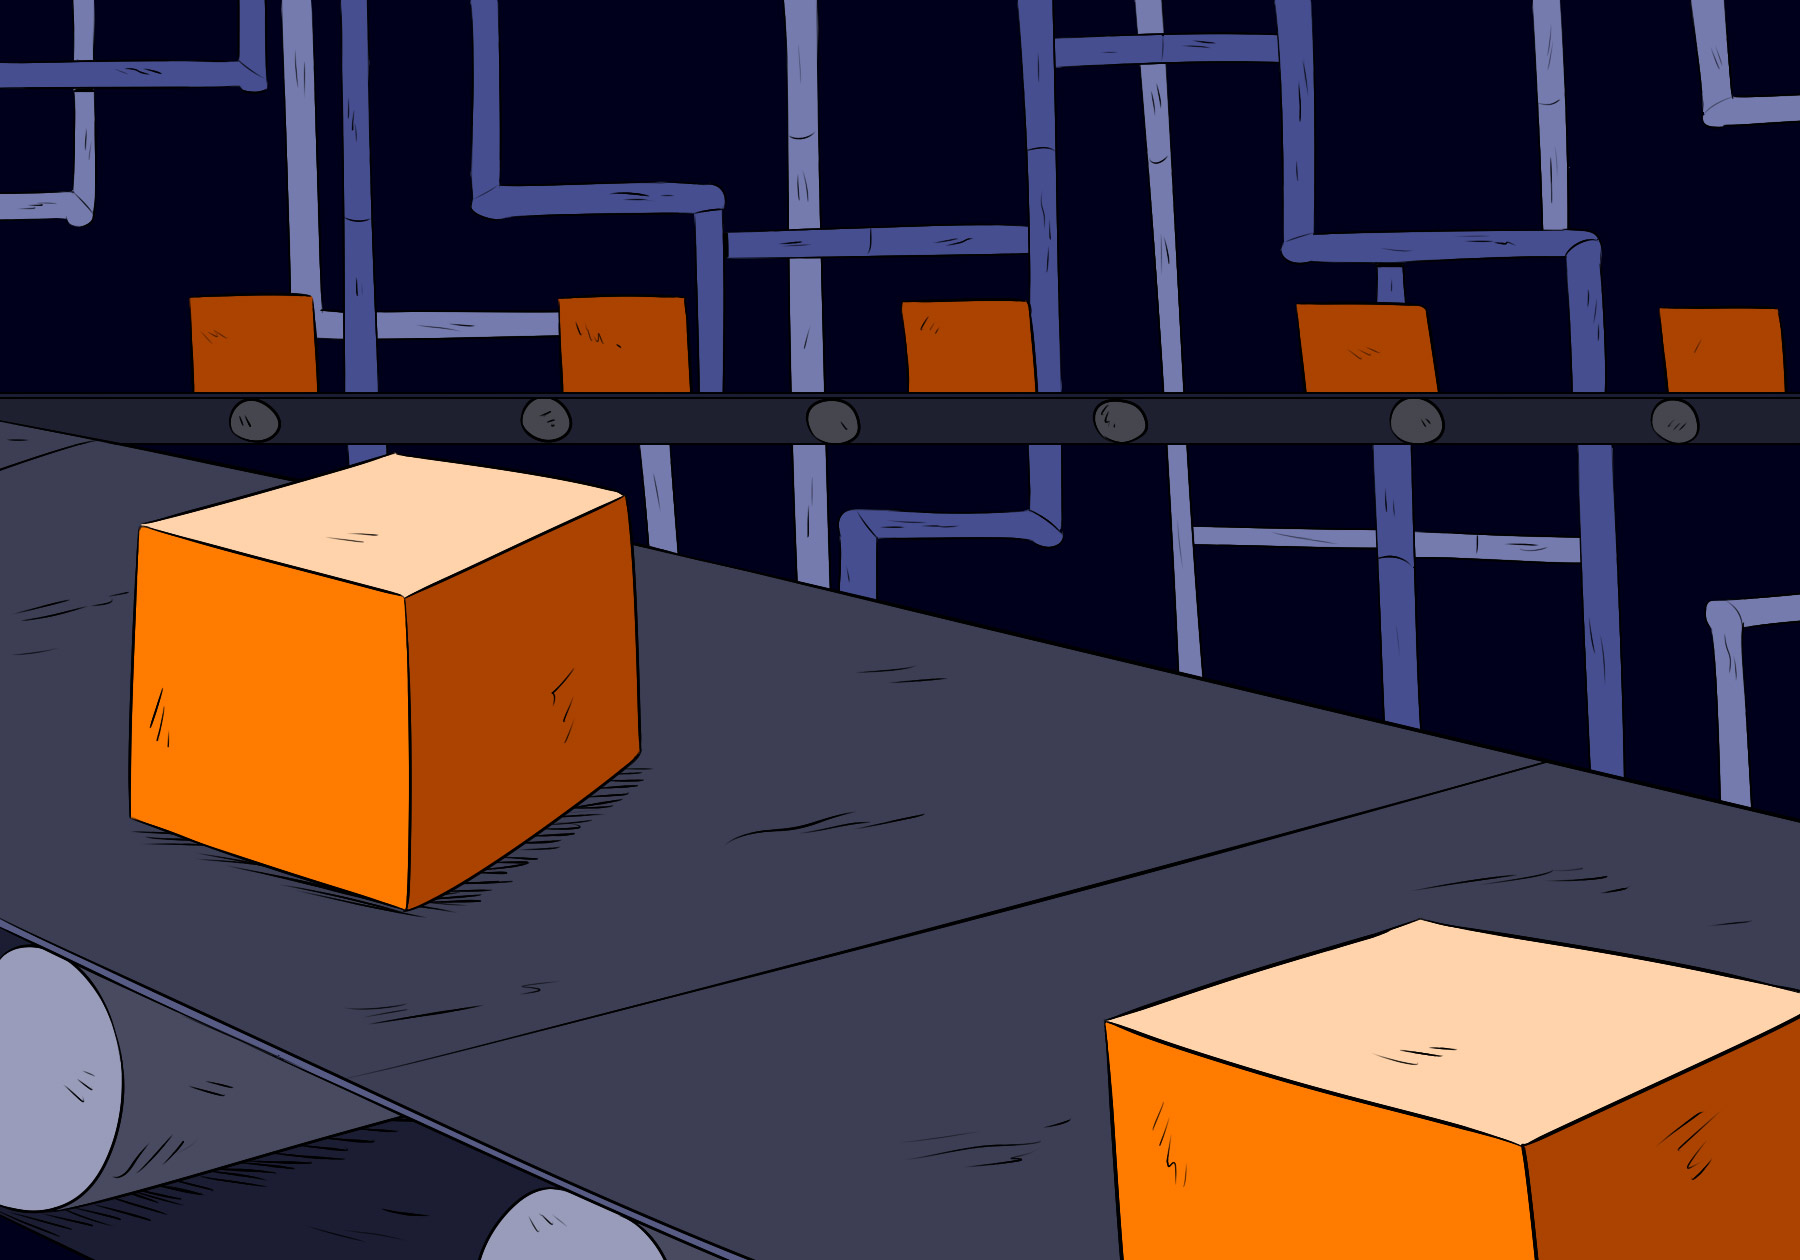 Illustration of boxes on a conveyor belt for an article on why websites frequently look the same